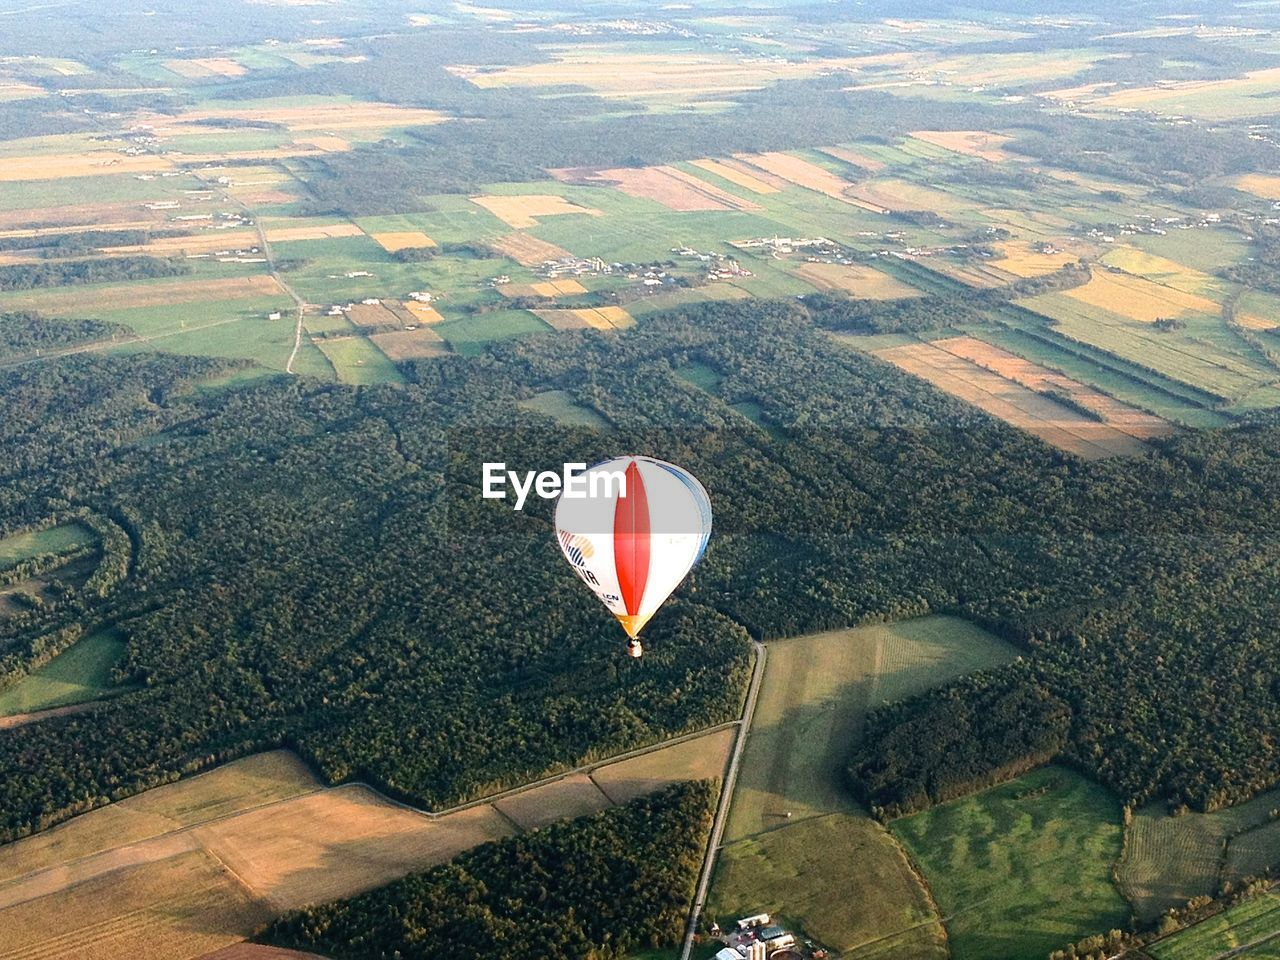 Aerial view of hot air balloon and rural landscape